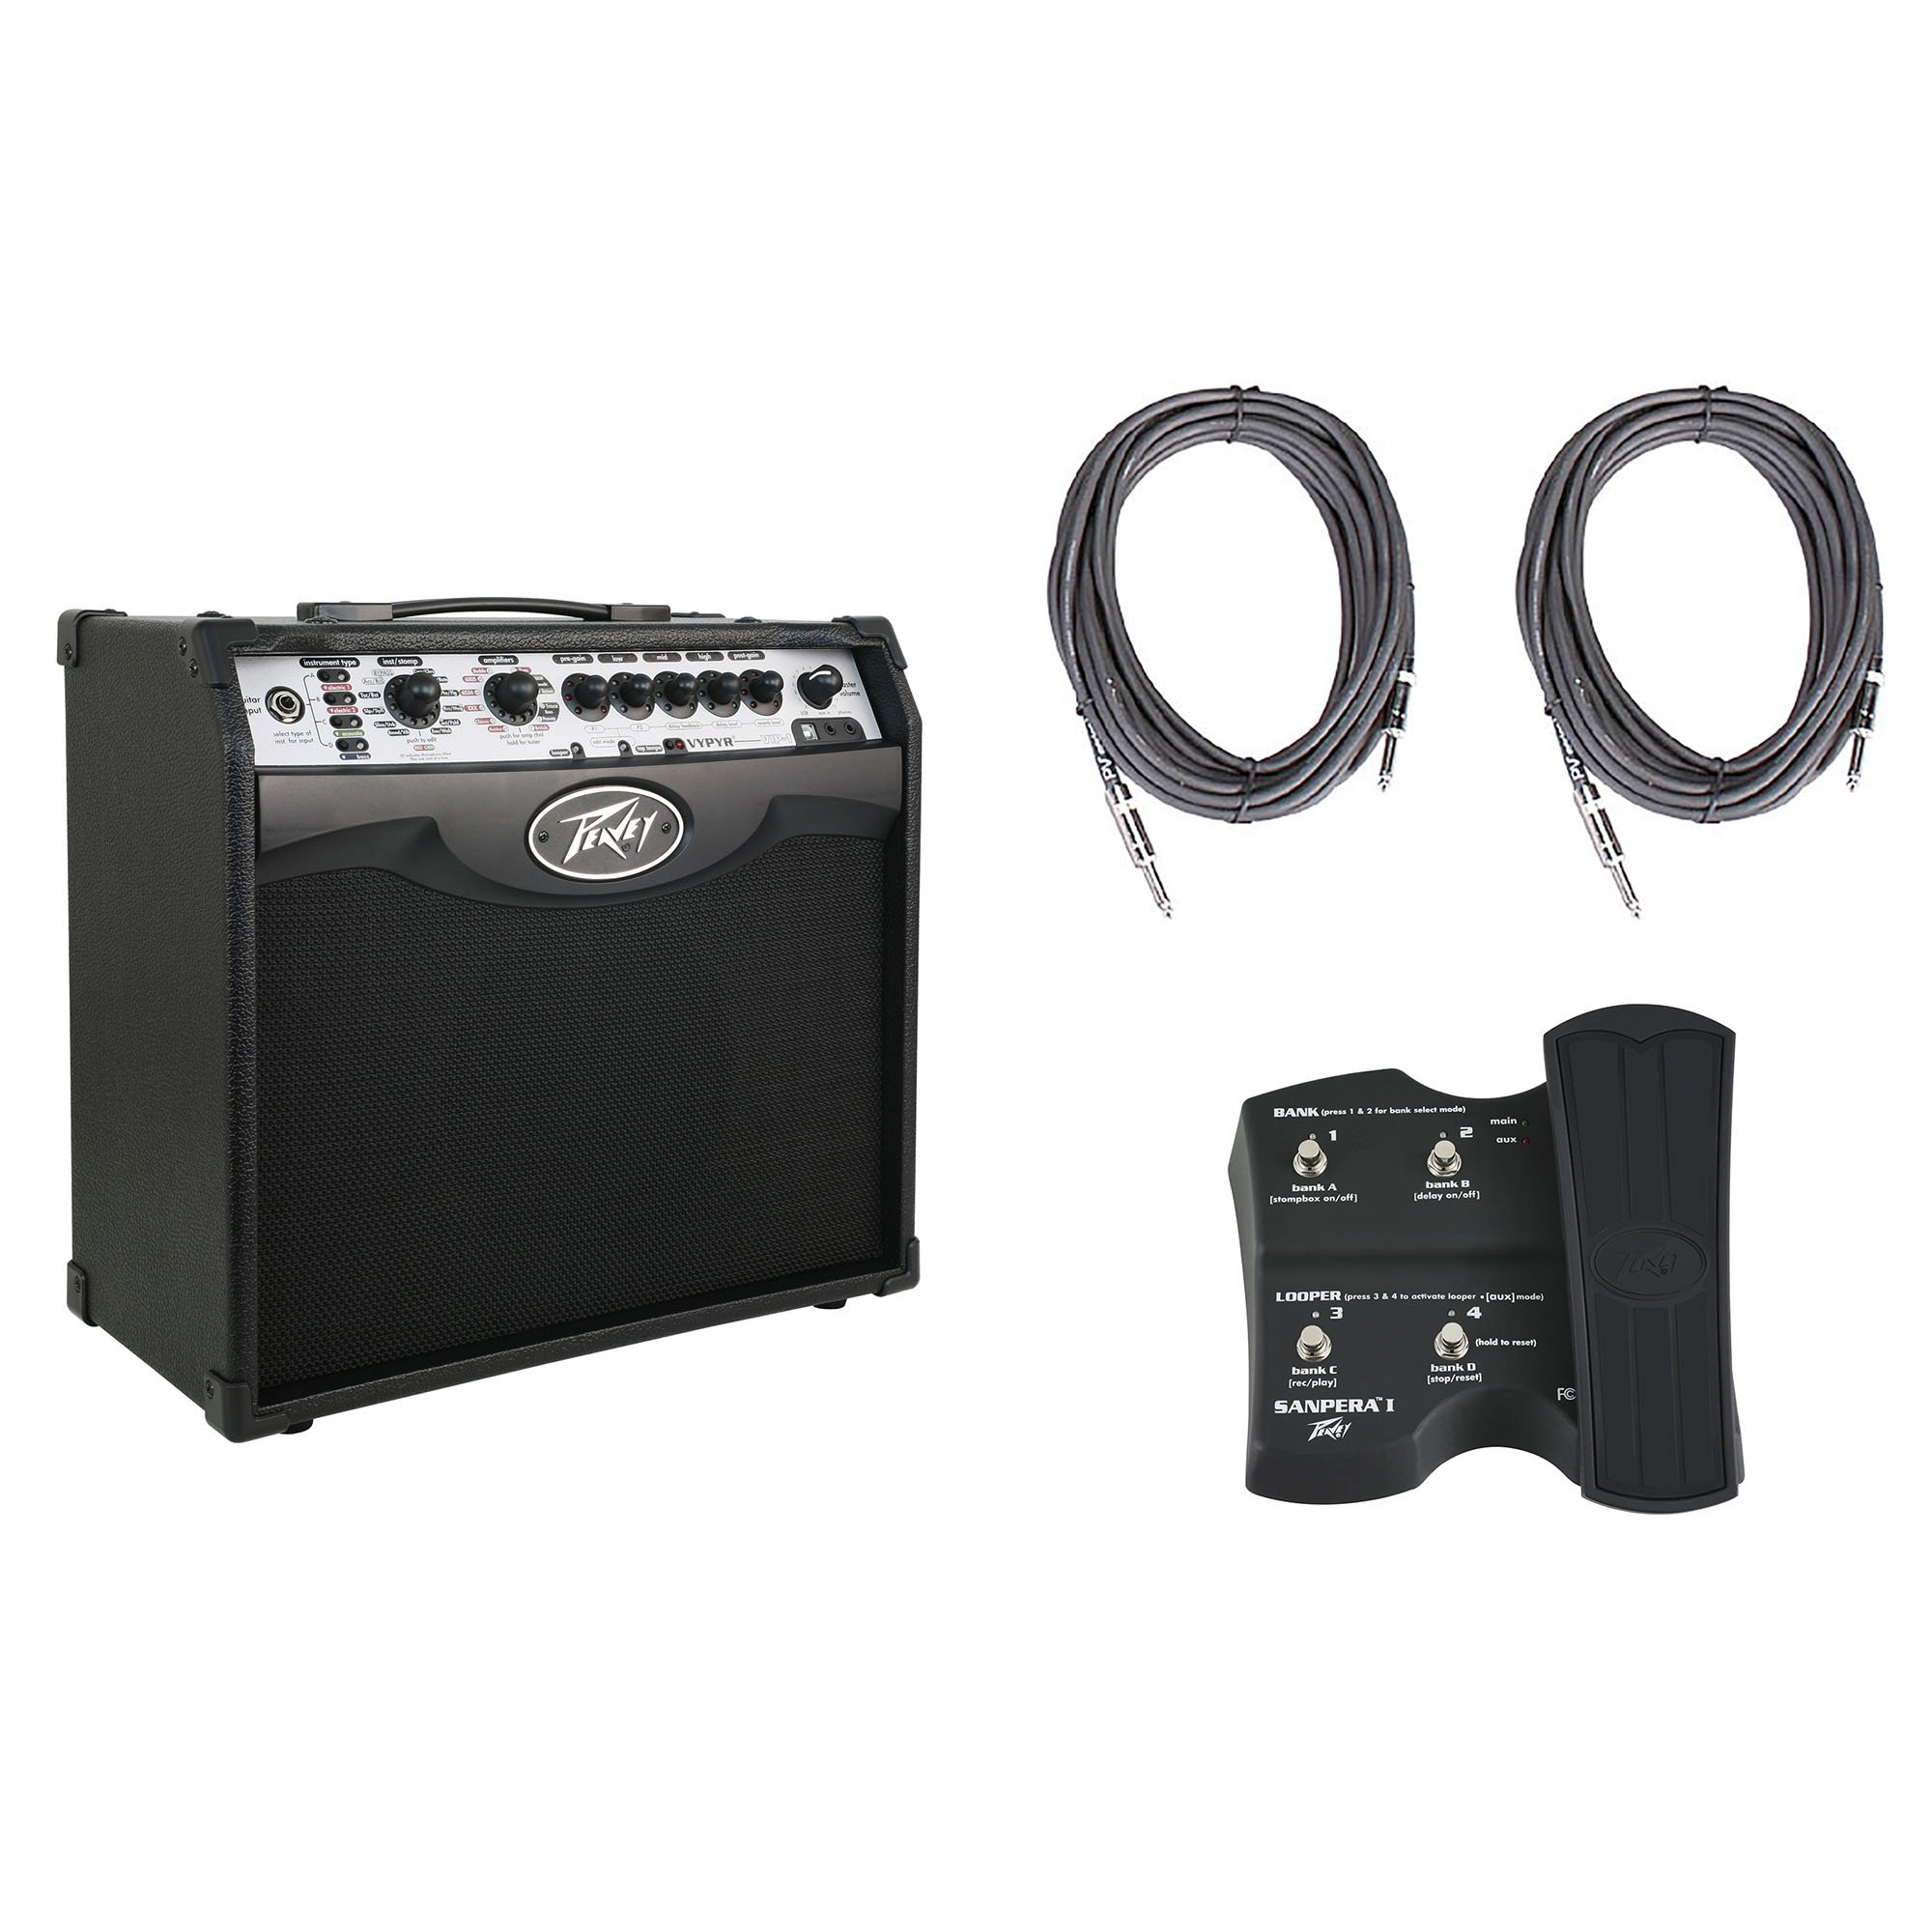 Peavey Vypyr VIP 1 Combo Guitar/Bass Modeling Amplifier + (2) 10' Cables + Sanpera I Foot Controller by Peavey